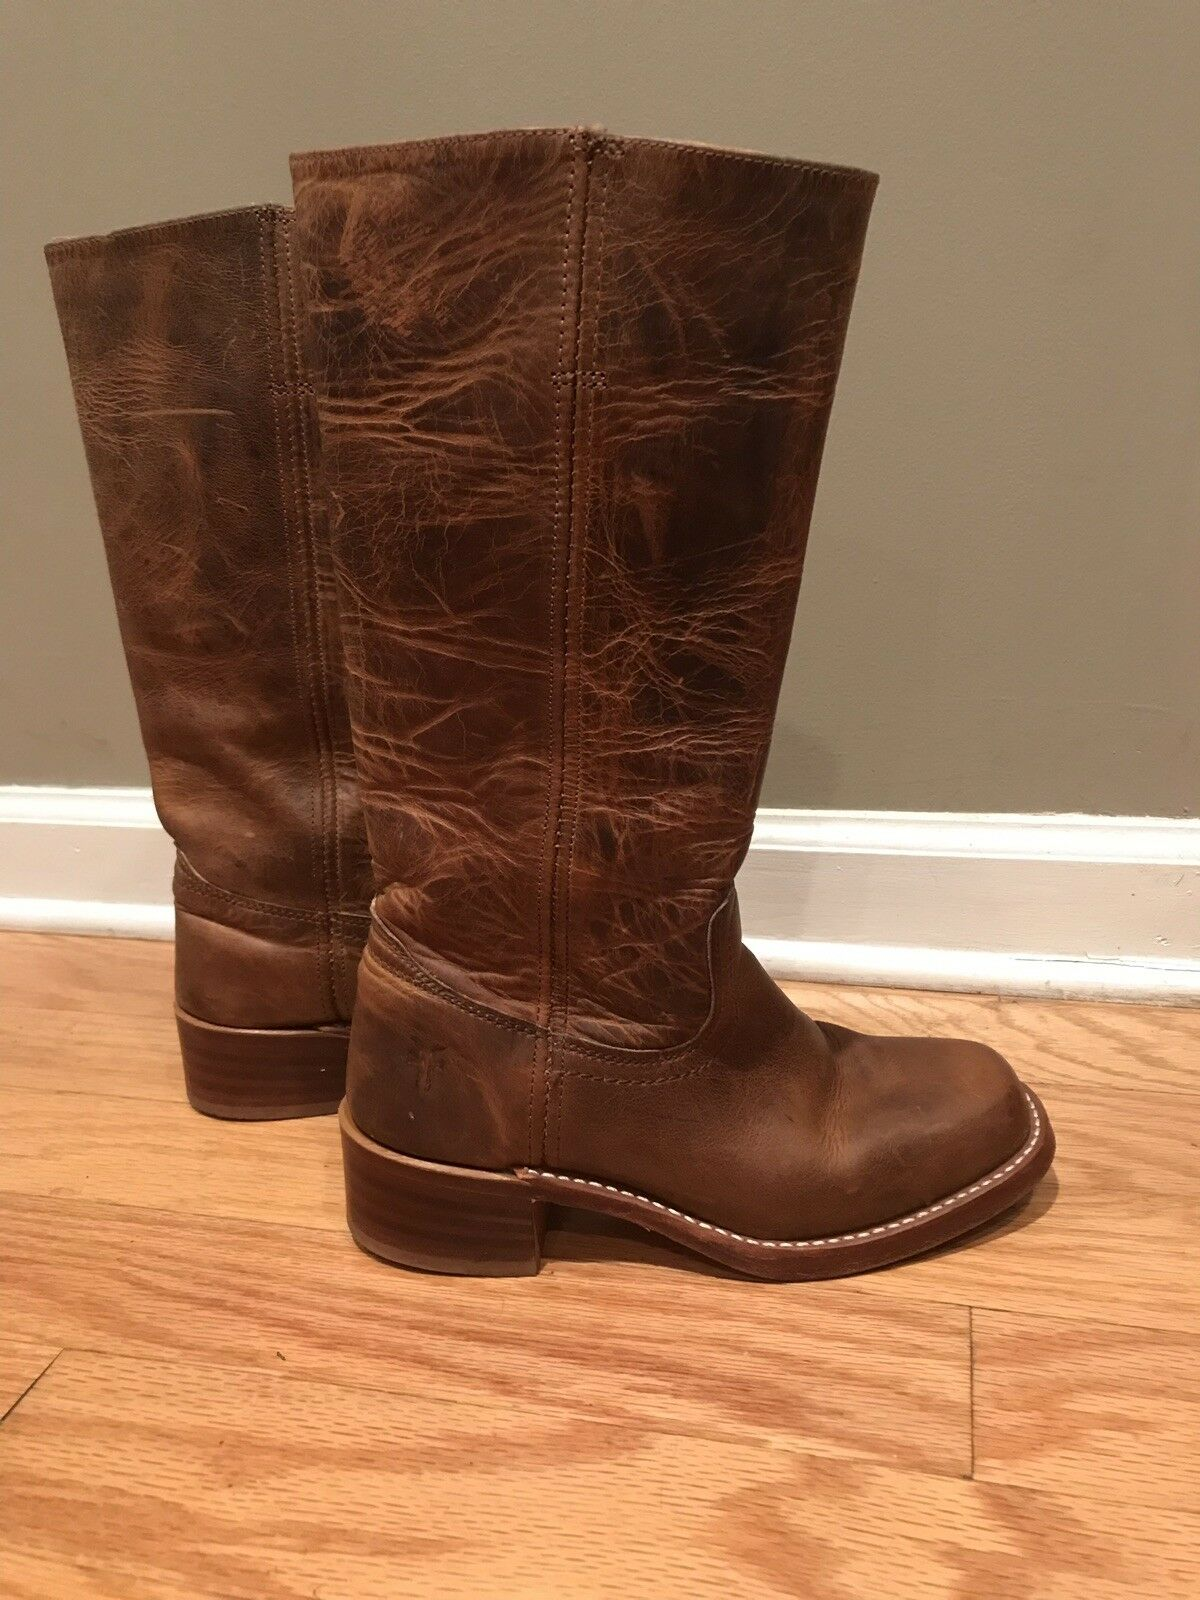 Womens Size 7.5 Frye Campus 14L Boots Dark Brown Distressed Distressed Distressed color- Excellent 96ed66